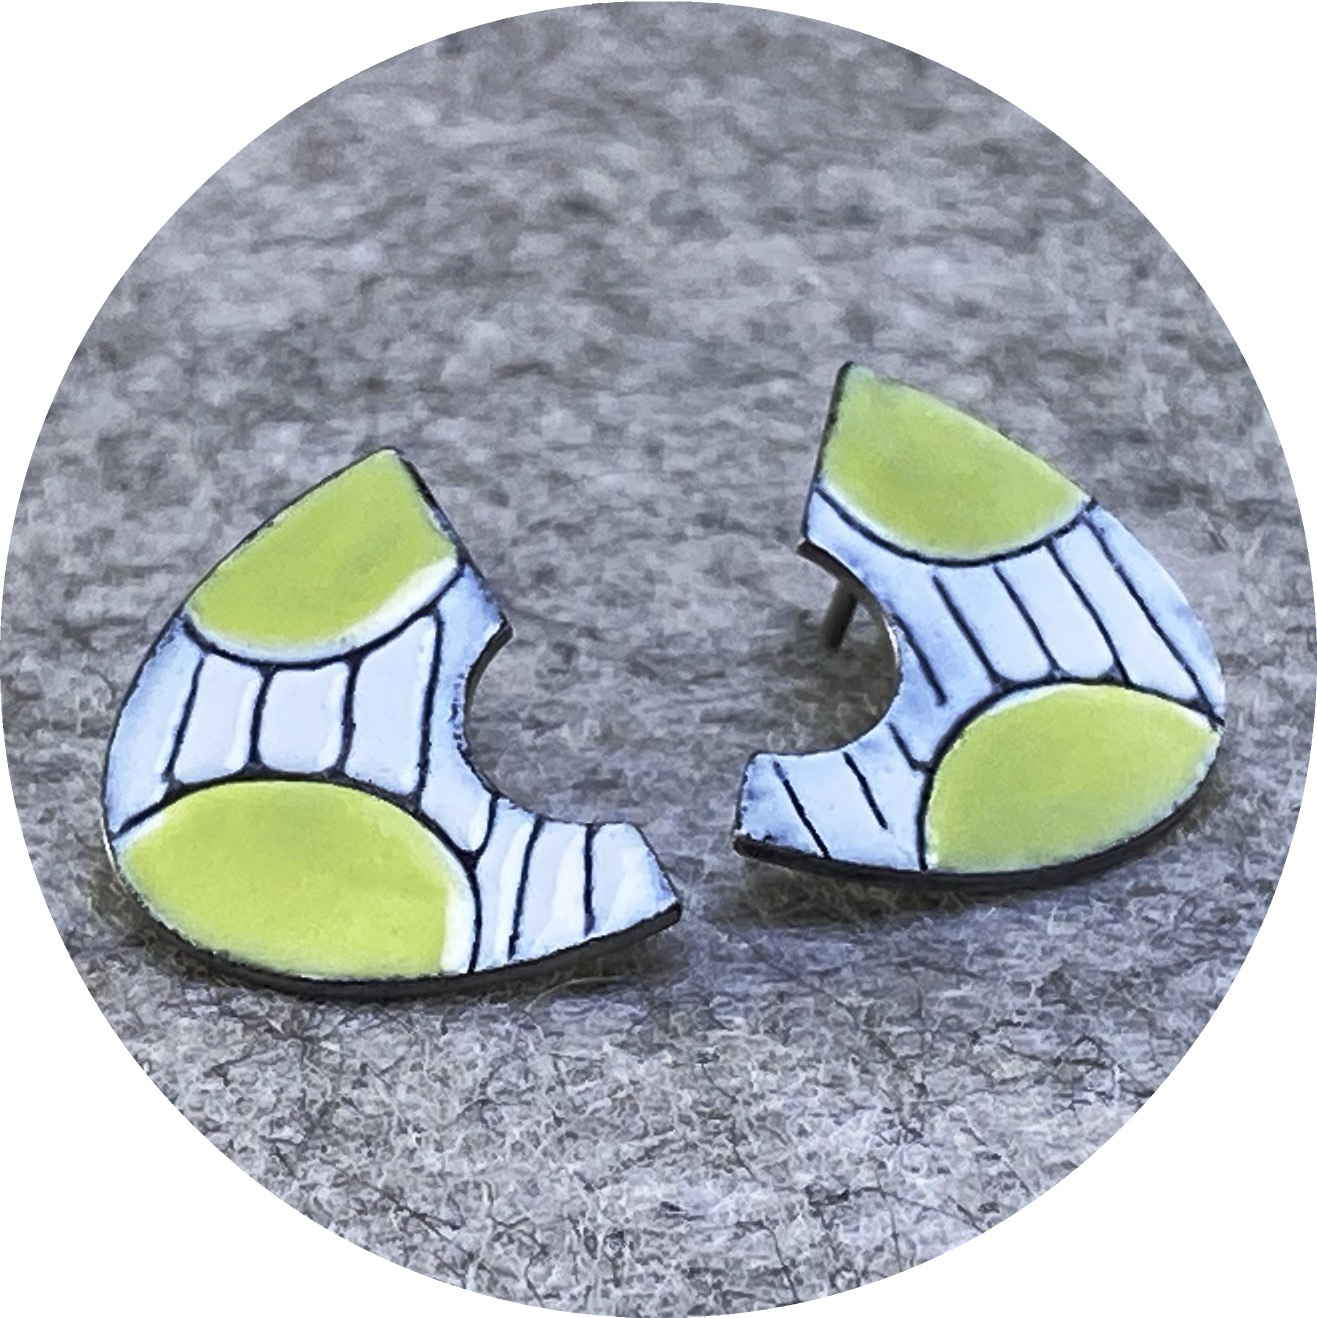 Sarah Murphy- Fan studs in medium. Chartreuse and white enamel on stainless steel.